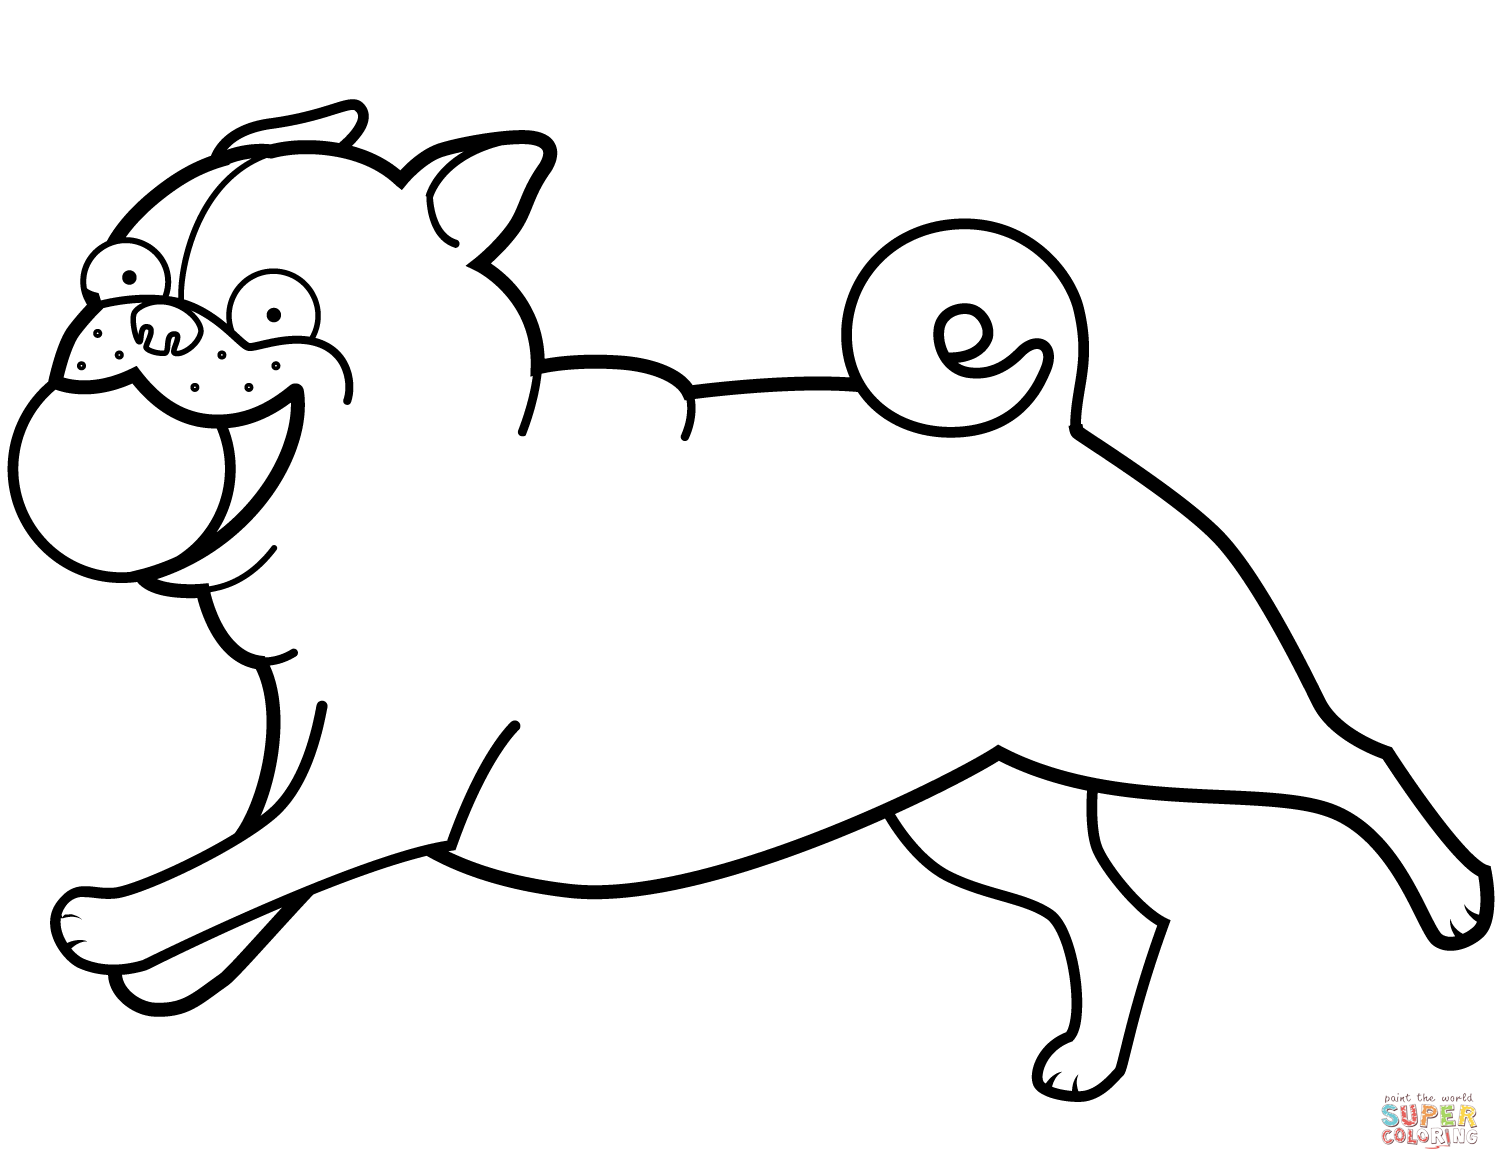 Pug Outline Drawing at GetDrawings.com | Free for personal use Pug ...